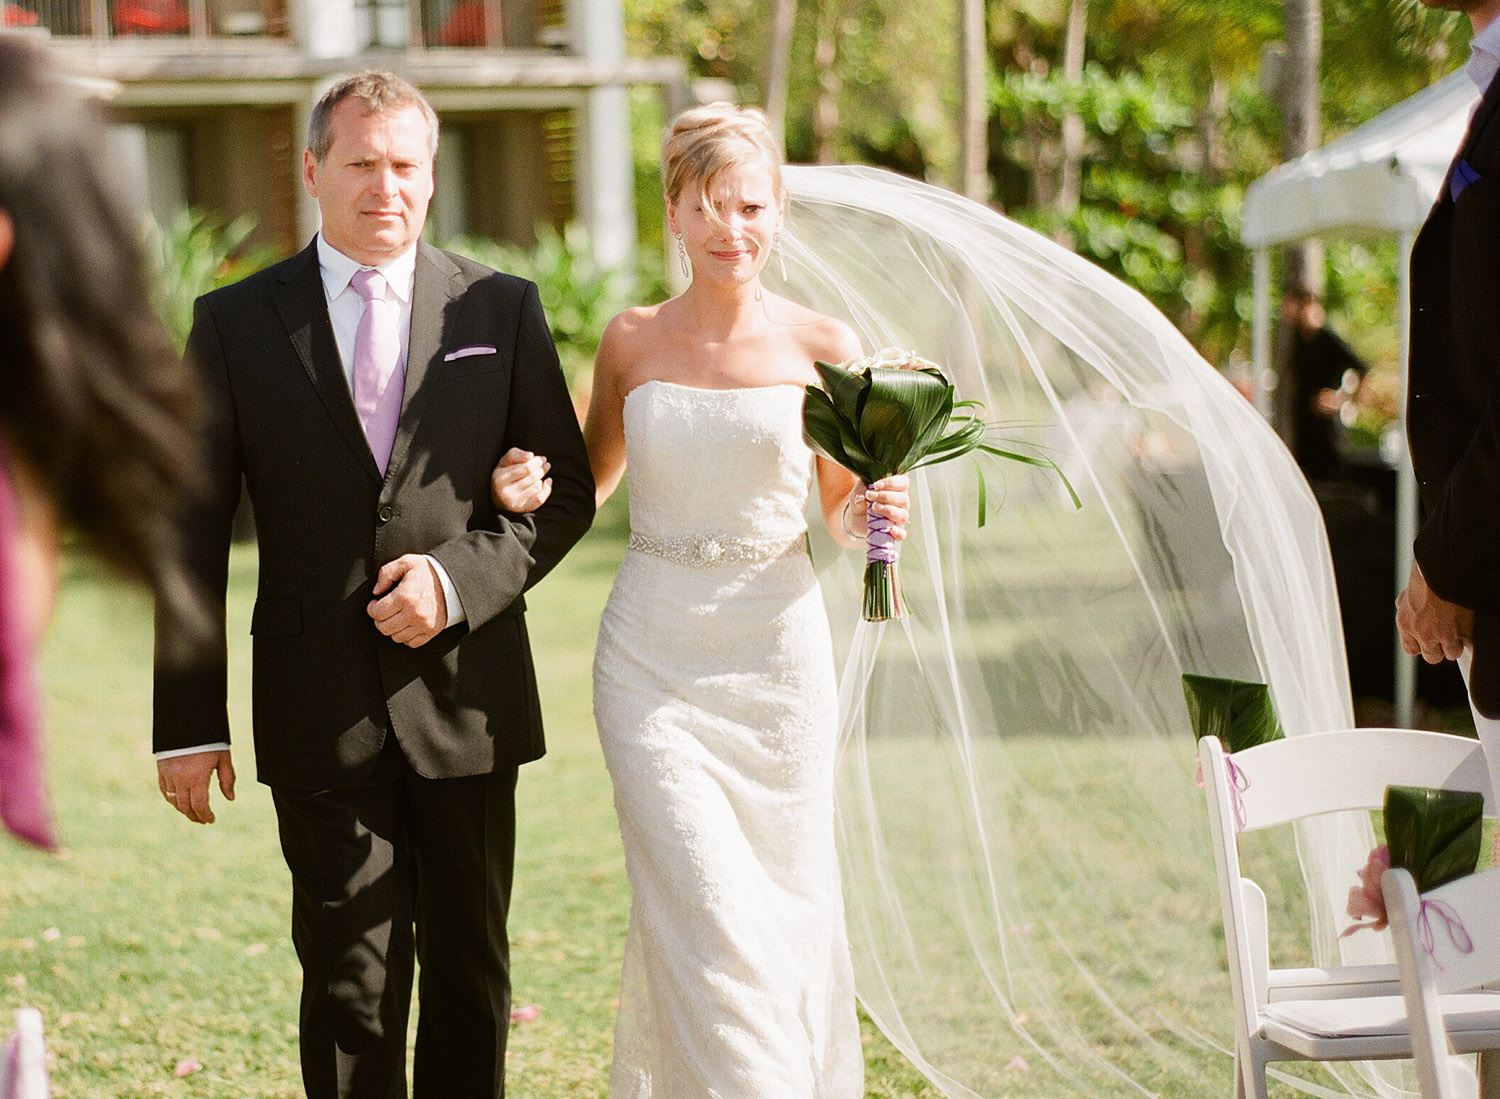 bride walks down the aisle crying at her Vieques ISland wedding at the W hotel. the wind catches her veil as Destination Wedding Photographer Lexia Frank photographs their wedding on film, as she is a destination wedding photographer and film photographer